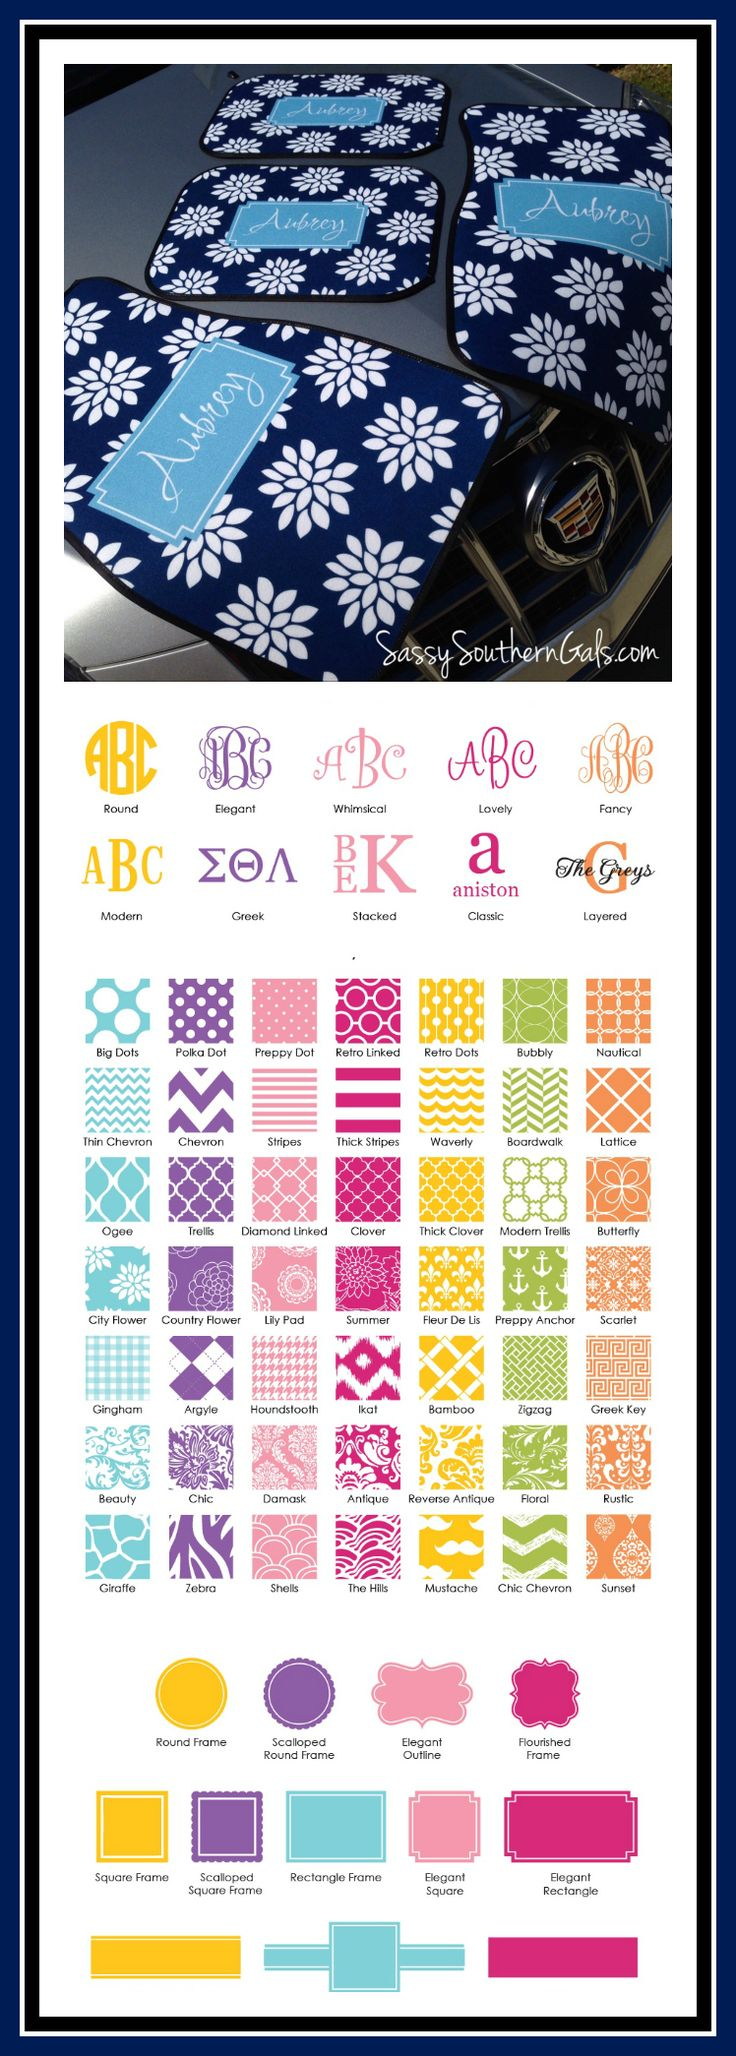 Car Mats, Personalized/Monogram Car on Etsy, $75.00 Monogrammed Gift | Sweet Sixteen Gift | Birthday Gift | 21st Birthday Gift | Car Accessories | Design Your Own | Personalized Gift |  Travel Accessories | Custom Car Mats| Design Your Own